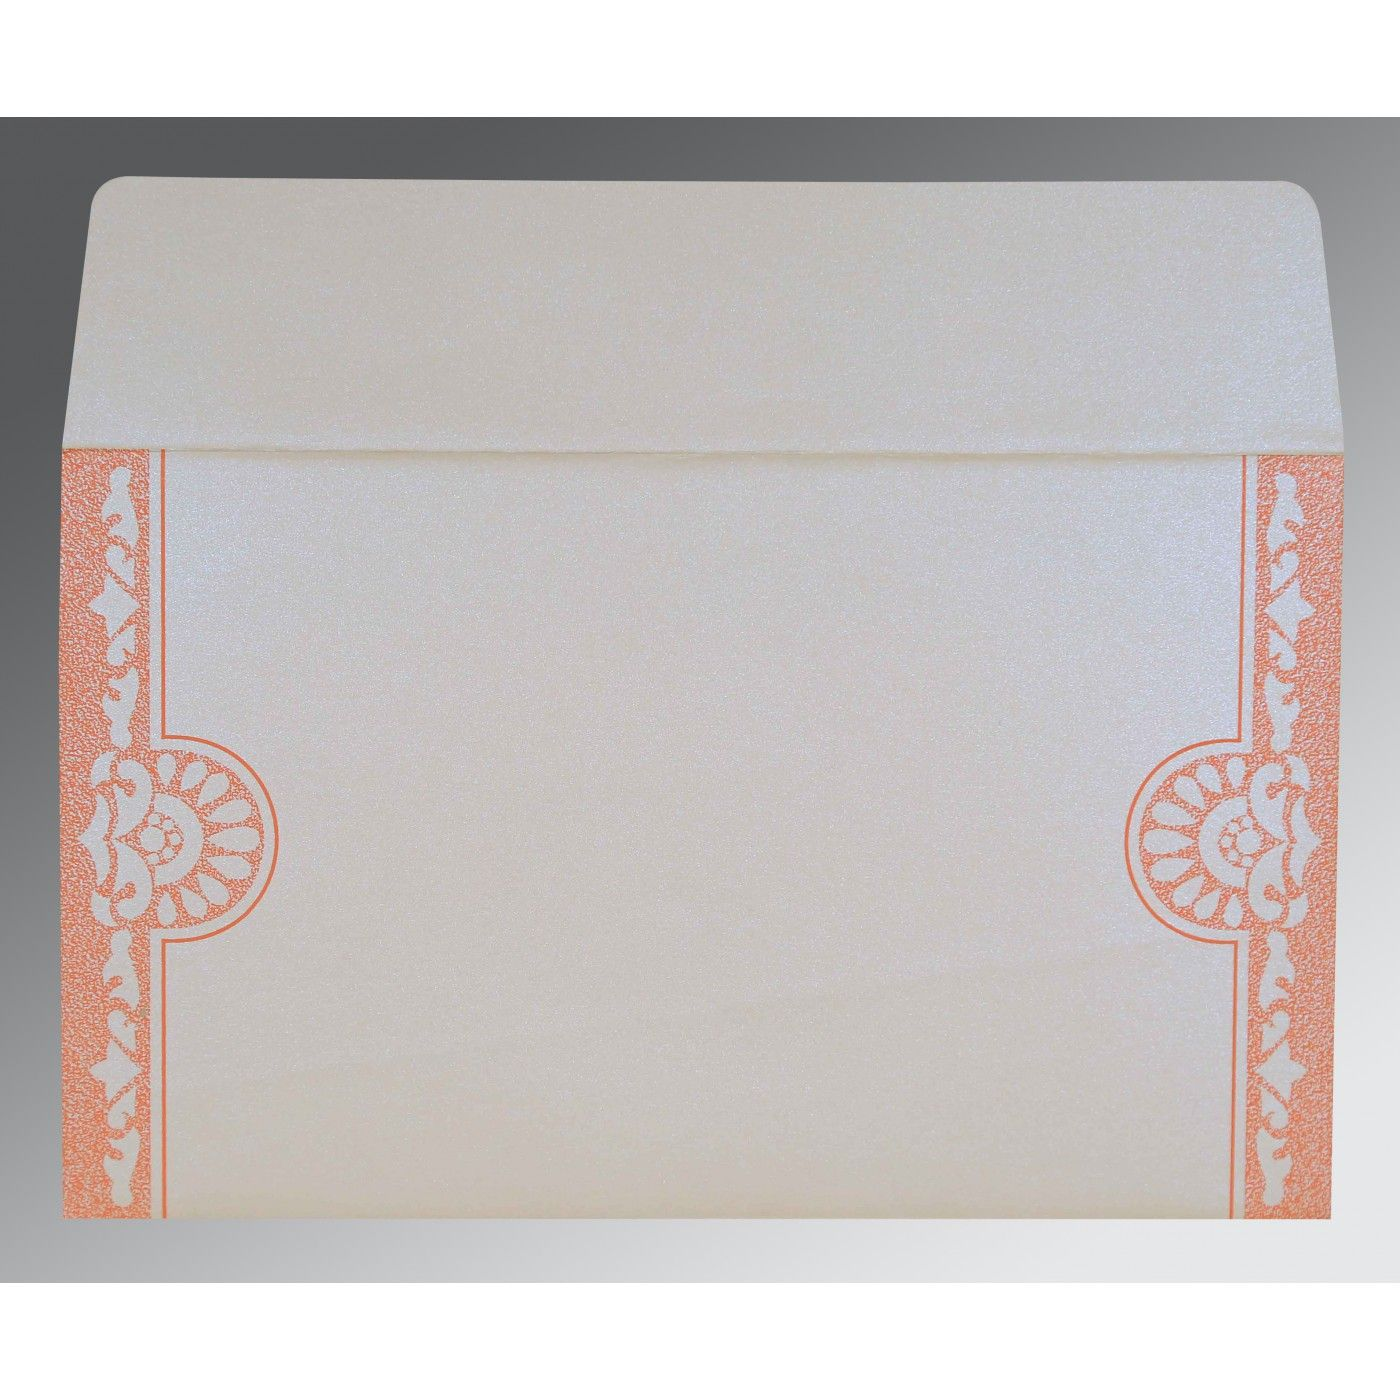 OFF-WHITE BLUE SHIMMERY FLORAL THEMED - SCREEN PRINTED WEDDING CARD : CD-8227N - IndianWeddingCards